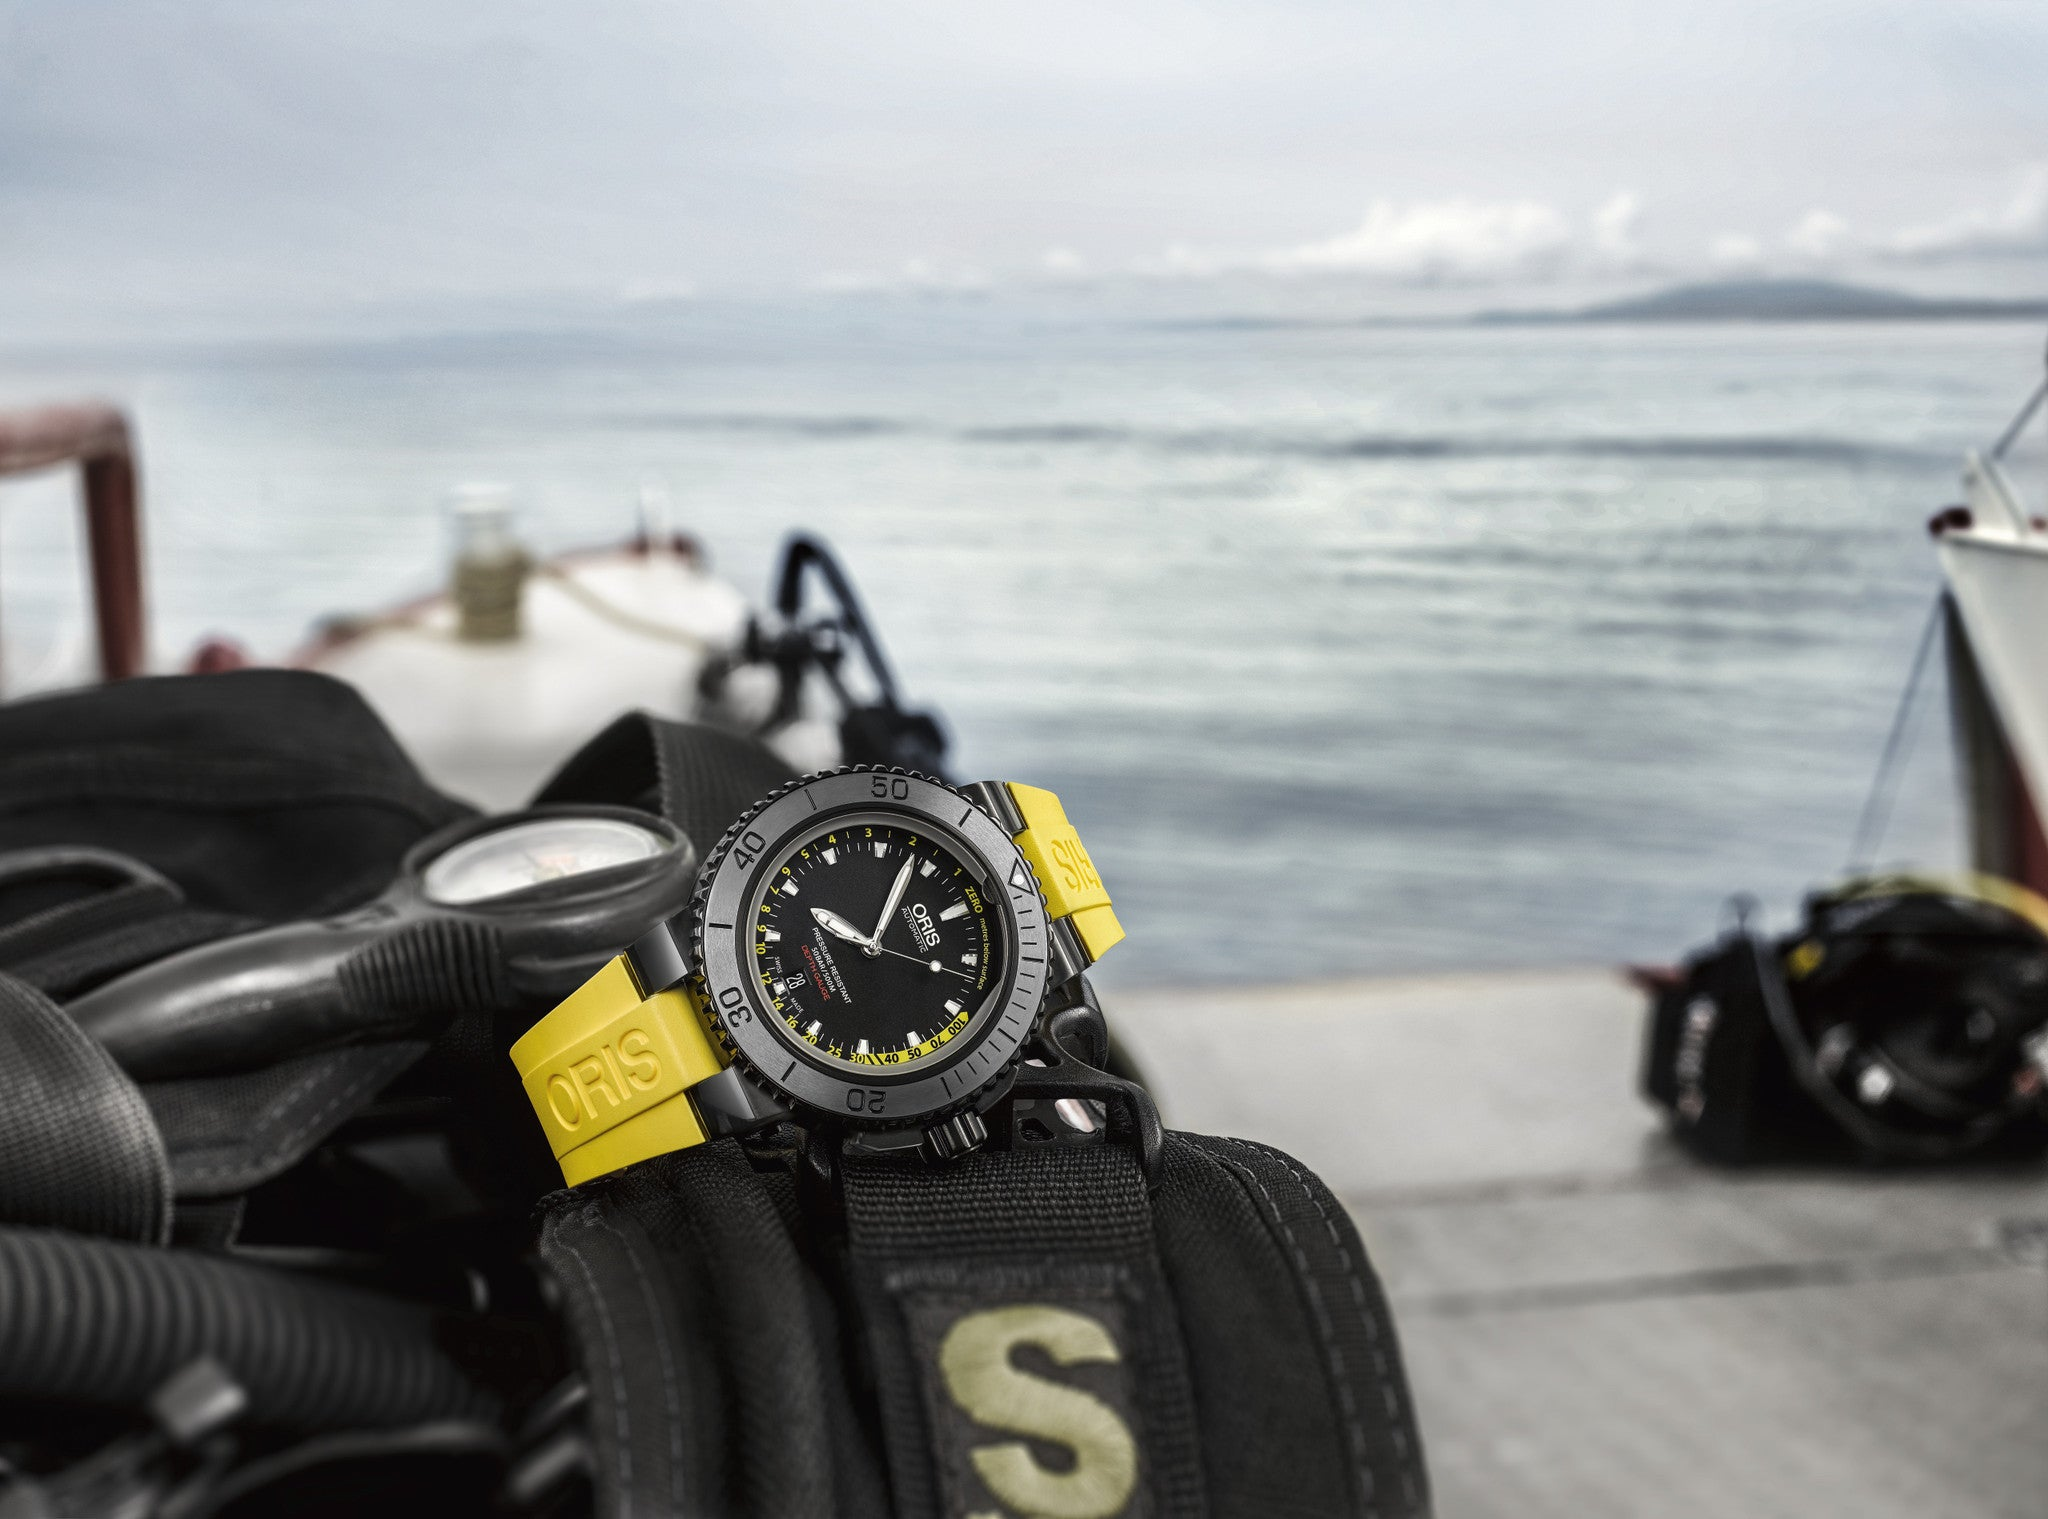 The Oris Aquis Depth Gauge: technology and ruggedness meet and impress